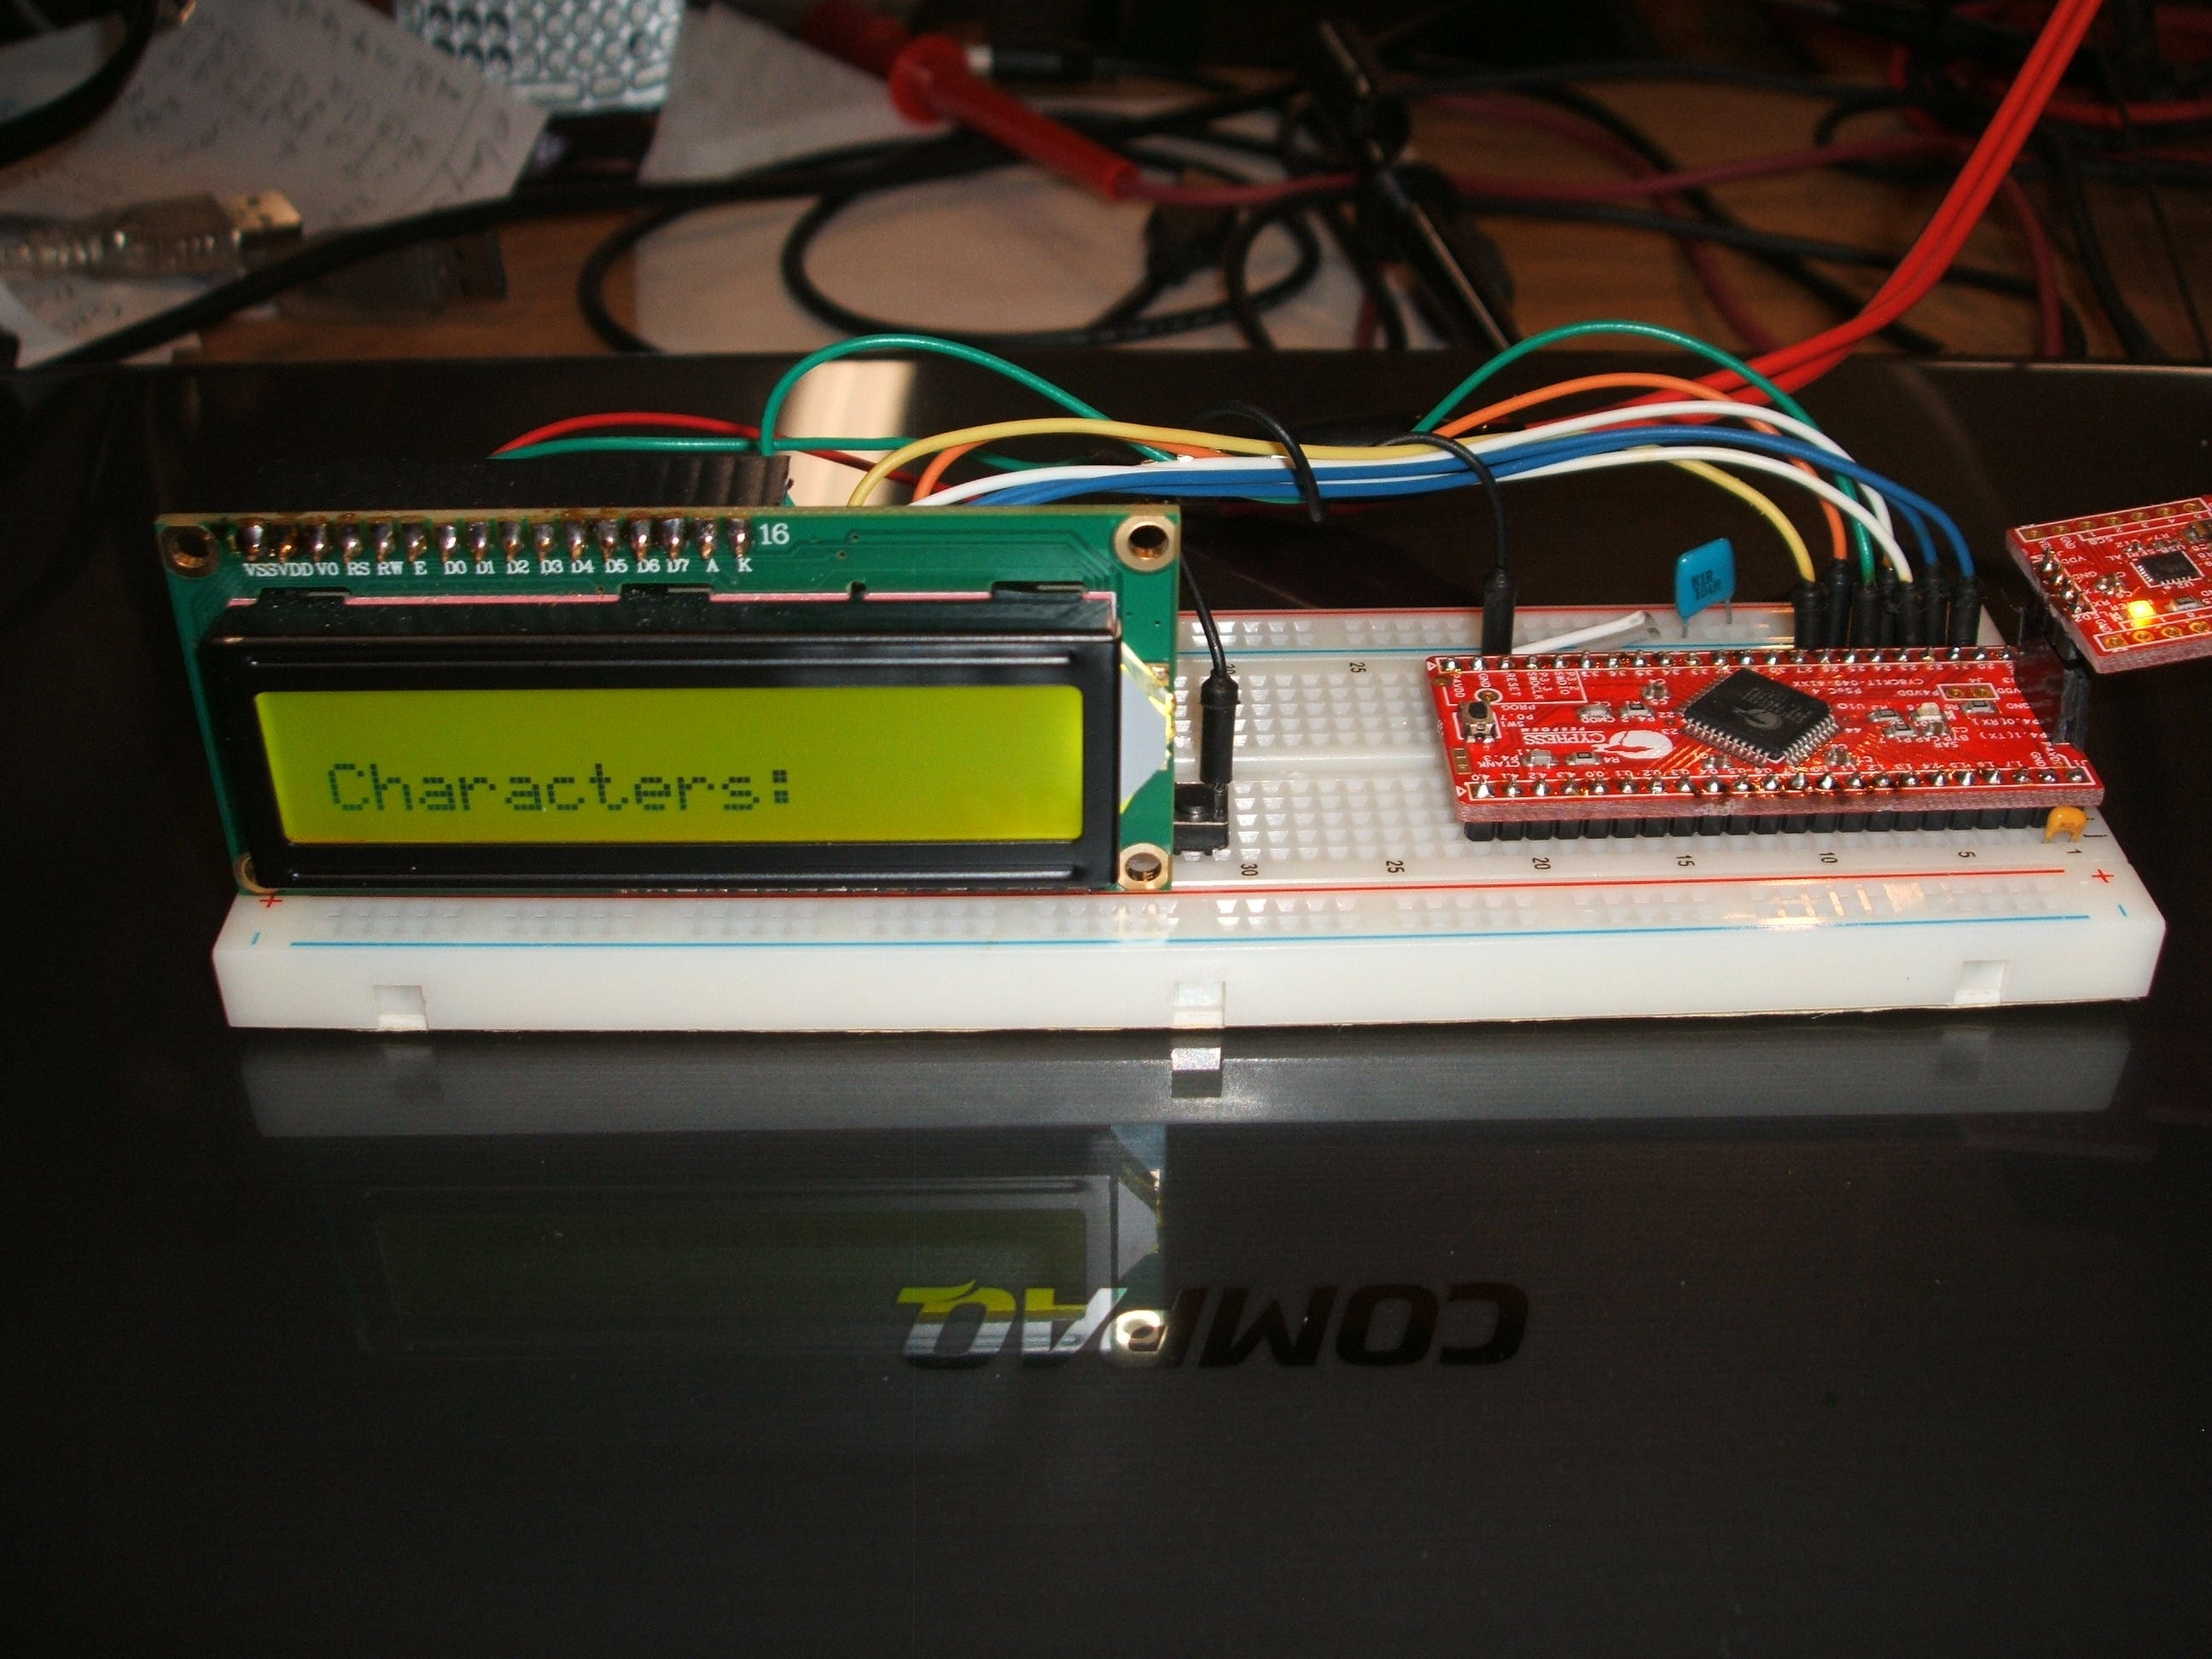 PSoC 4: Basic LCD Display